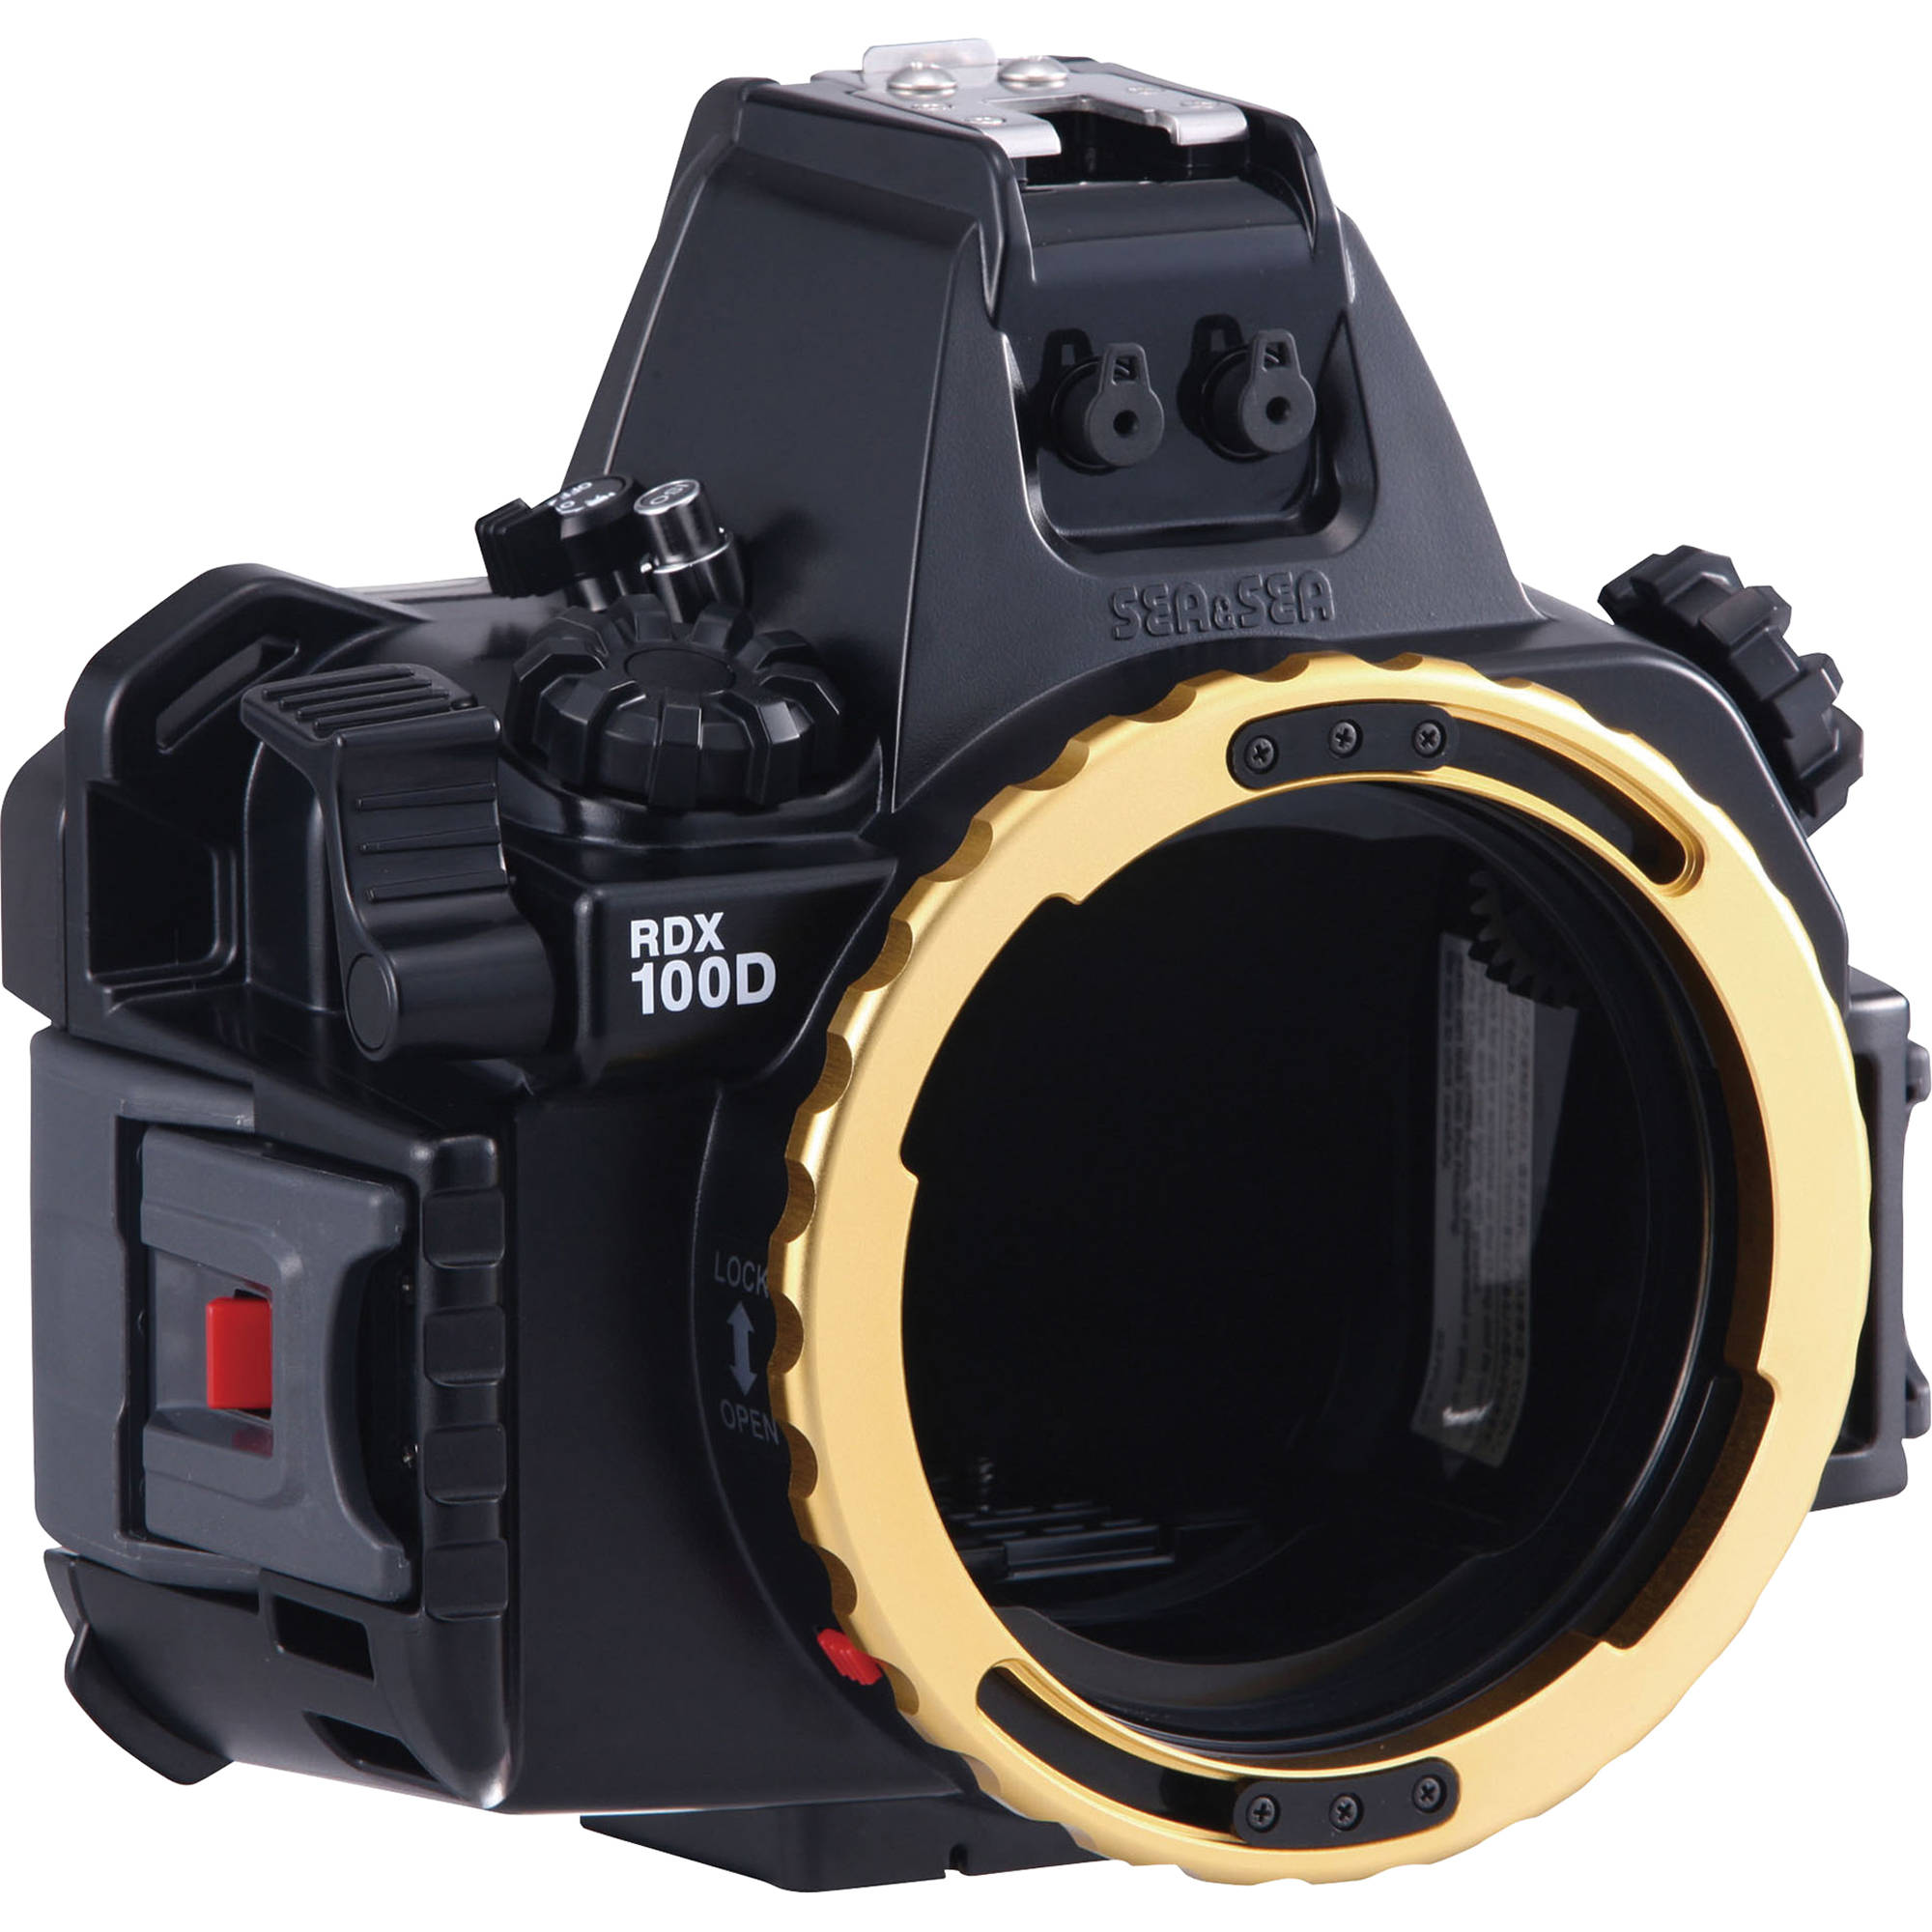 sea sea rdx 100d underwater housing for canon eos ss. Black Bedroom Furniture Sets. Home Design Ideas